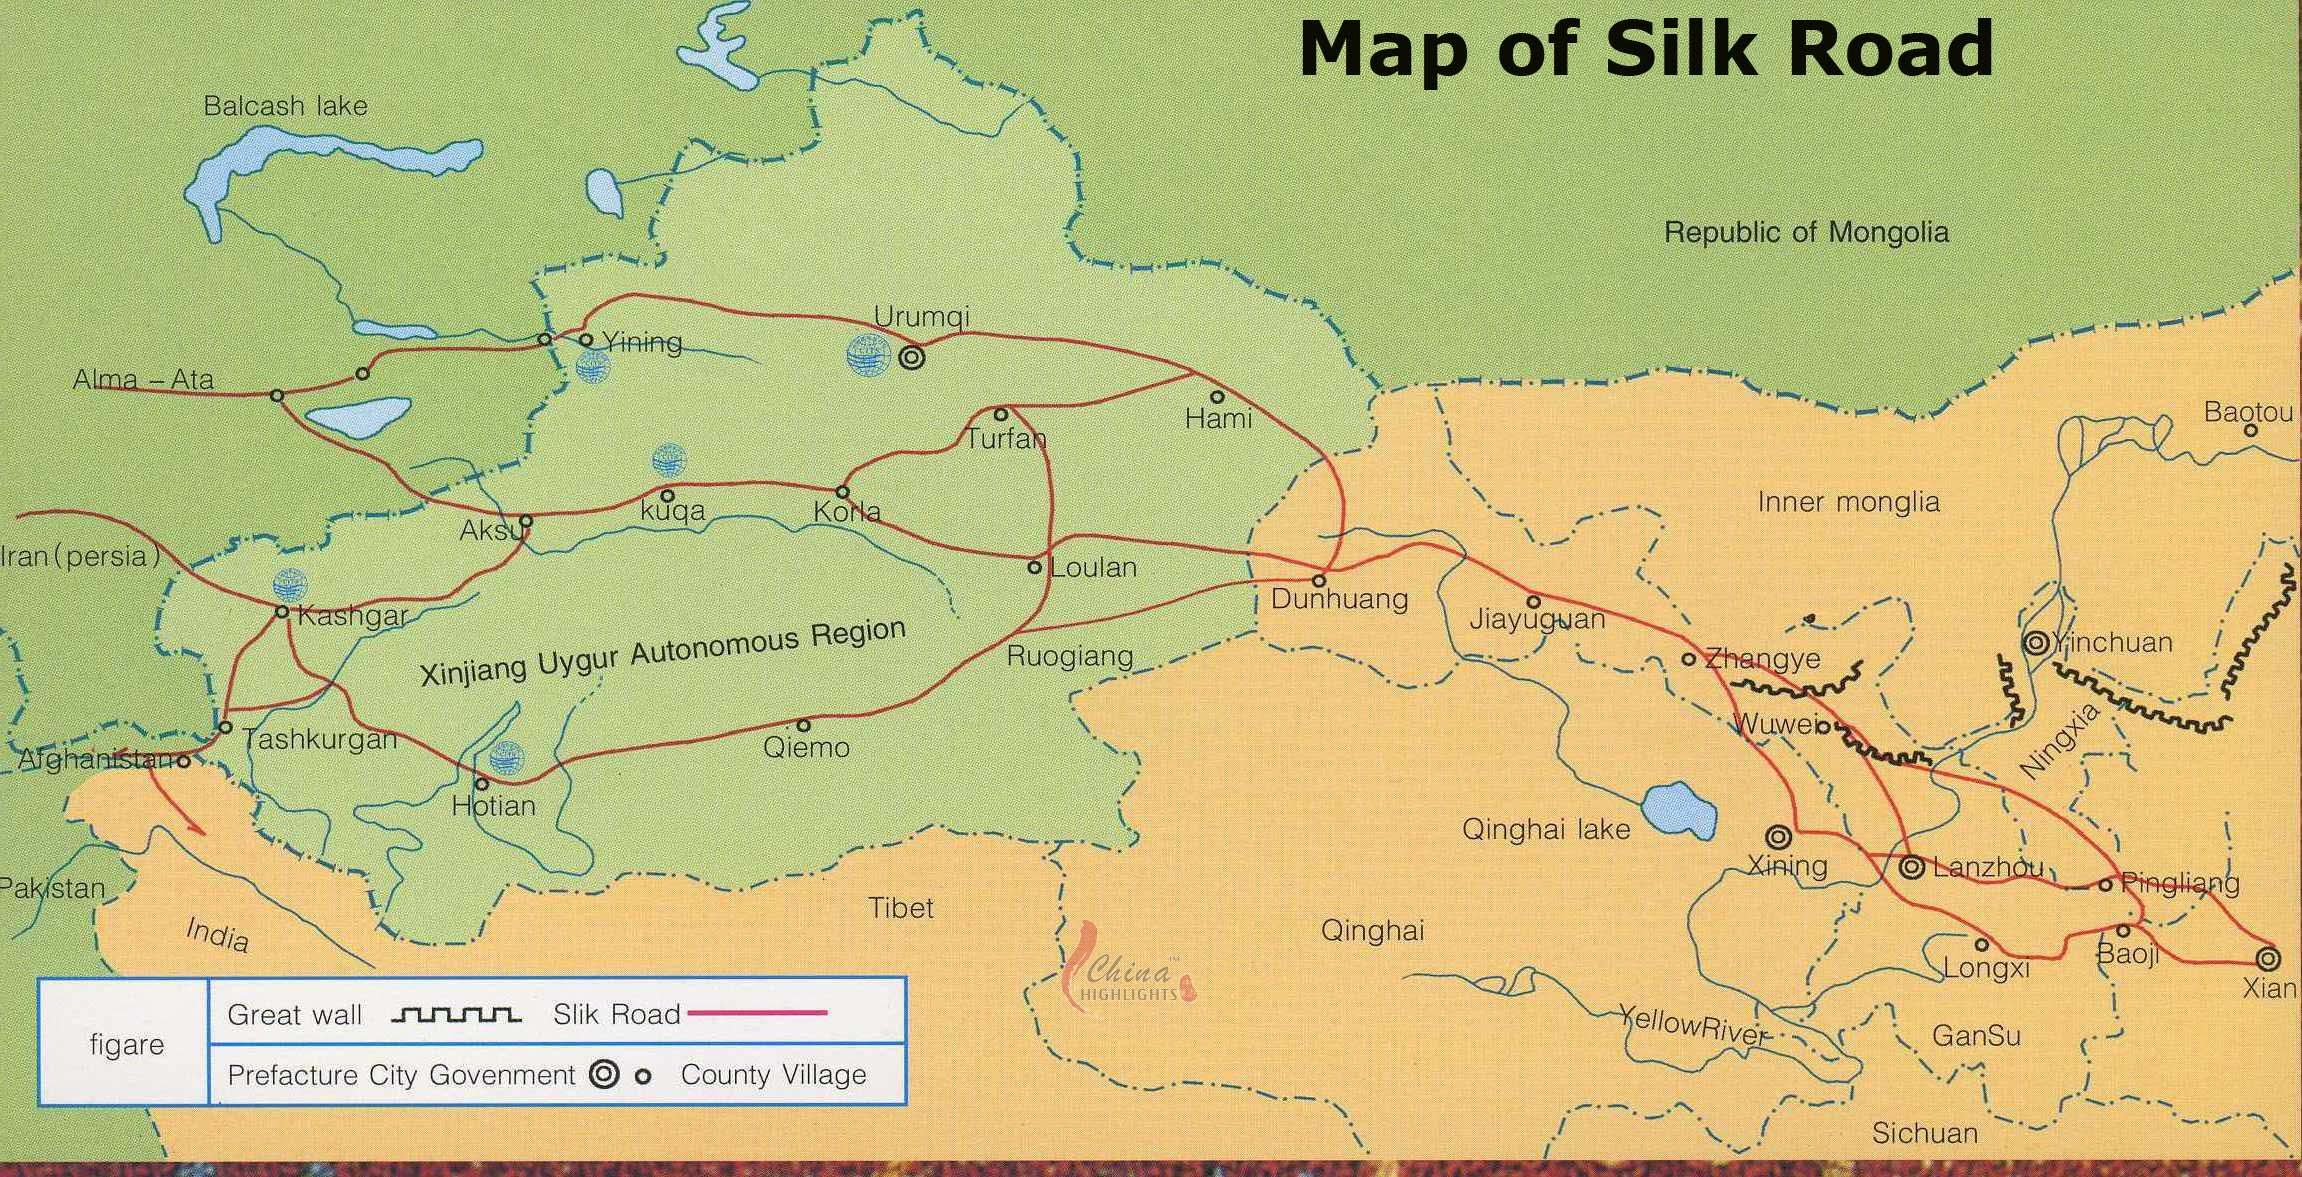 silk route The silk road has existed for thousands of years, passing through many different empires, kingdoms, reigns and societies throughout history at certain times in its.